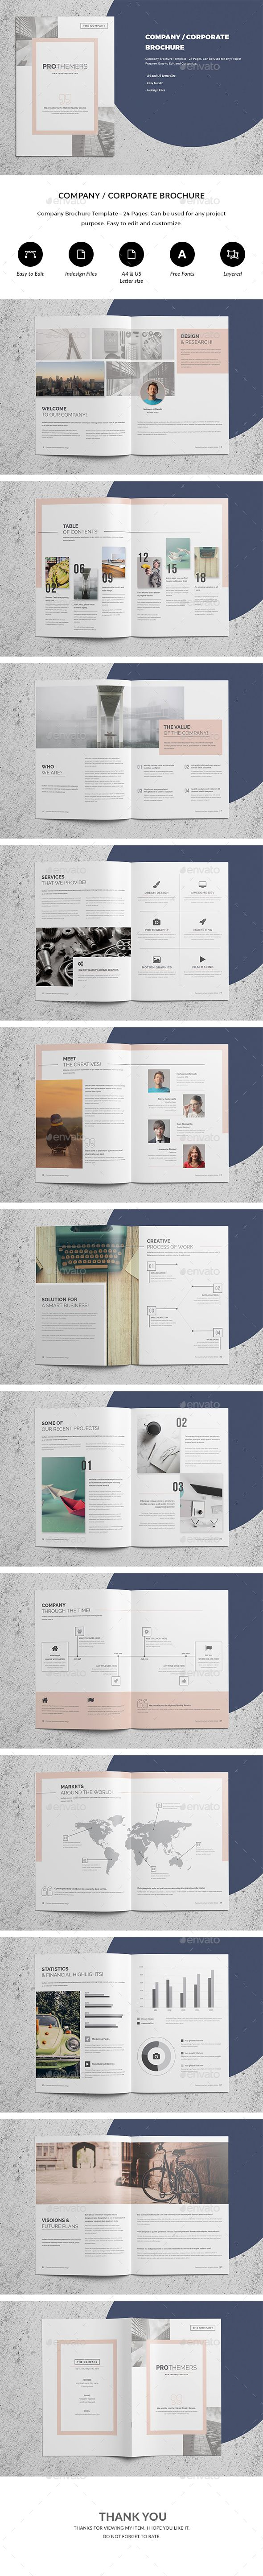 Best Brochure Templates Images On   Brochure Design